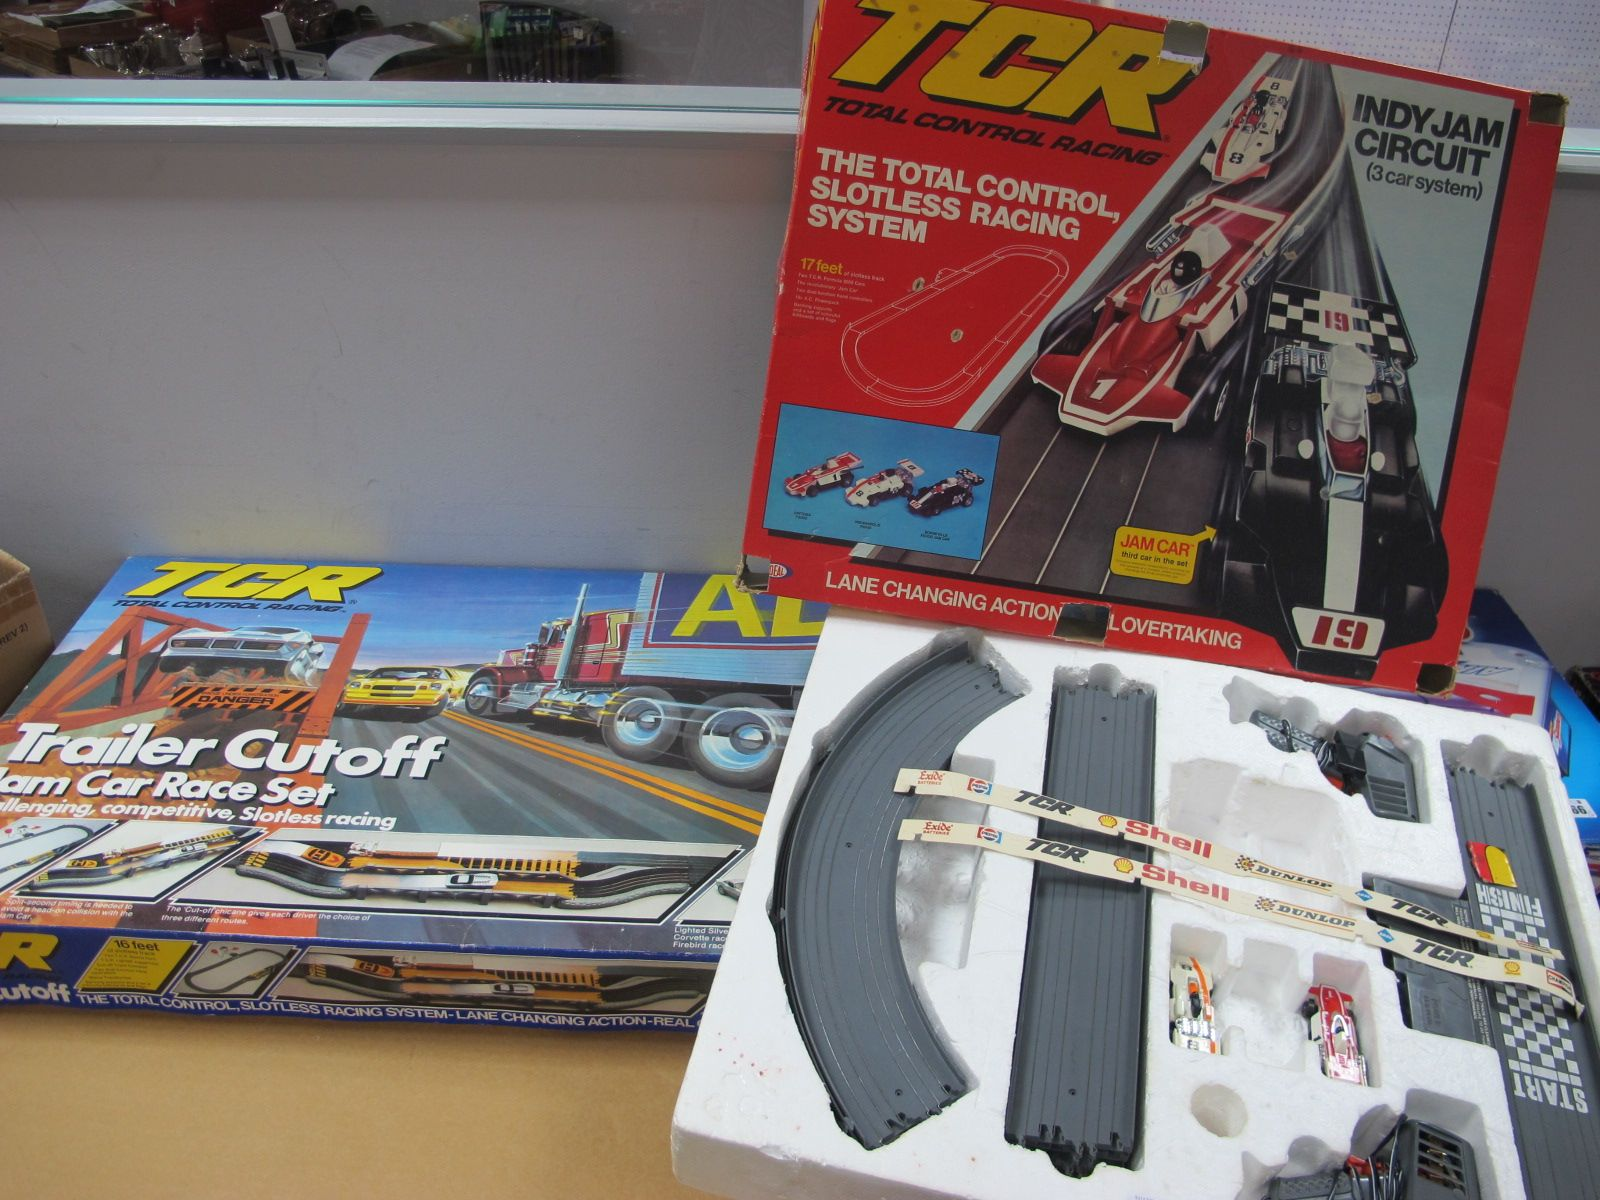 Total Control Racing - Indy Jam Circuit and Trailer Jam Car Race Set, both boxed, but only two